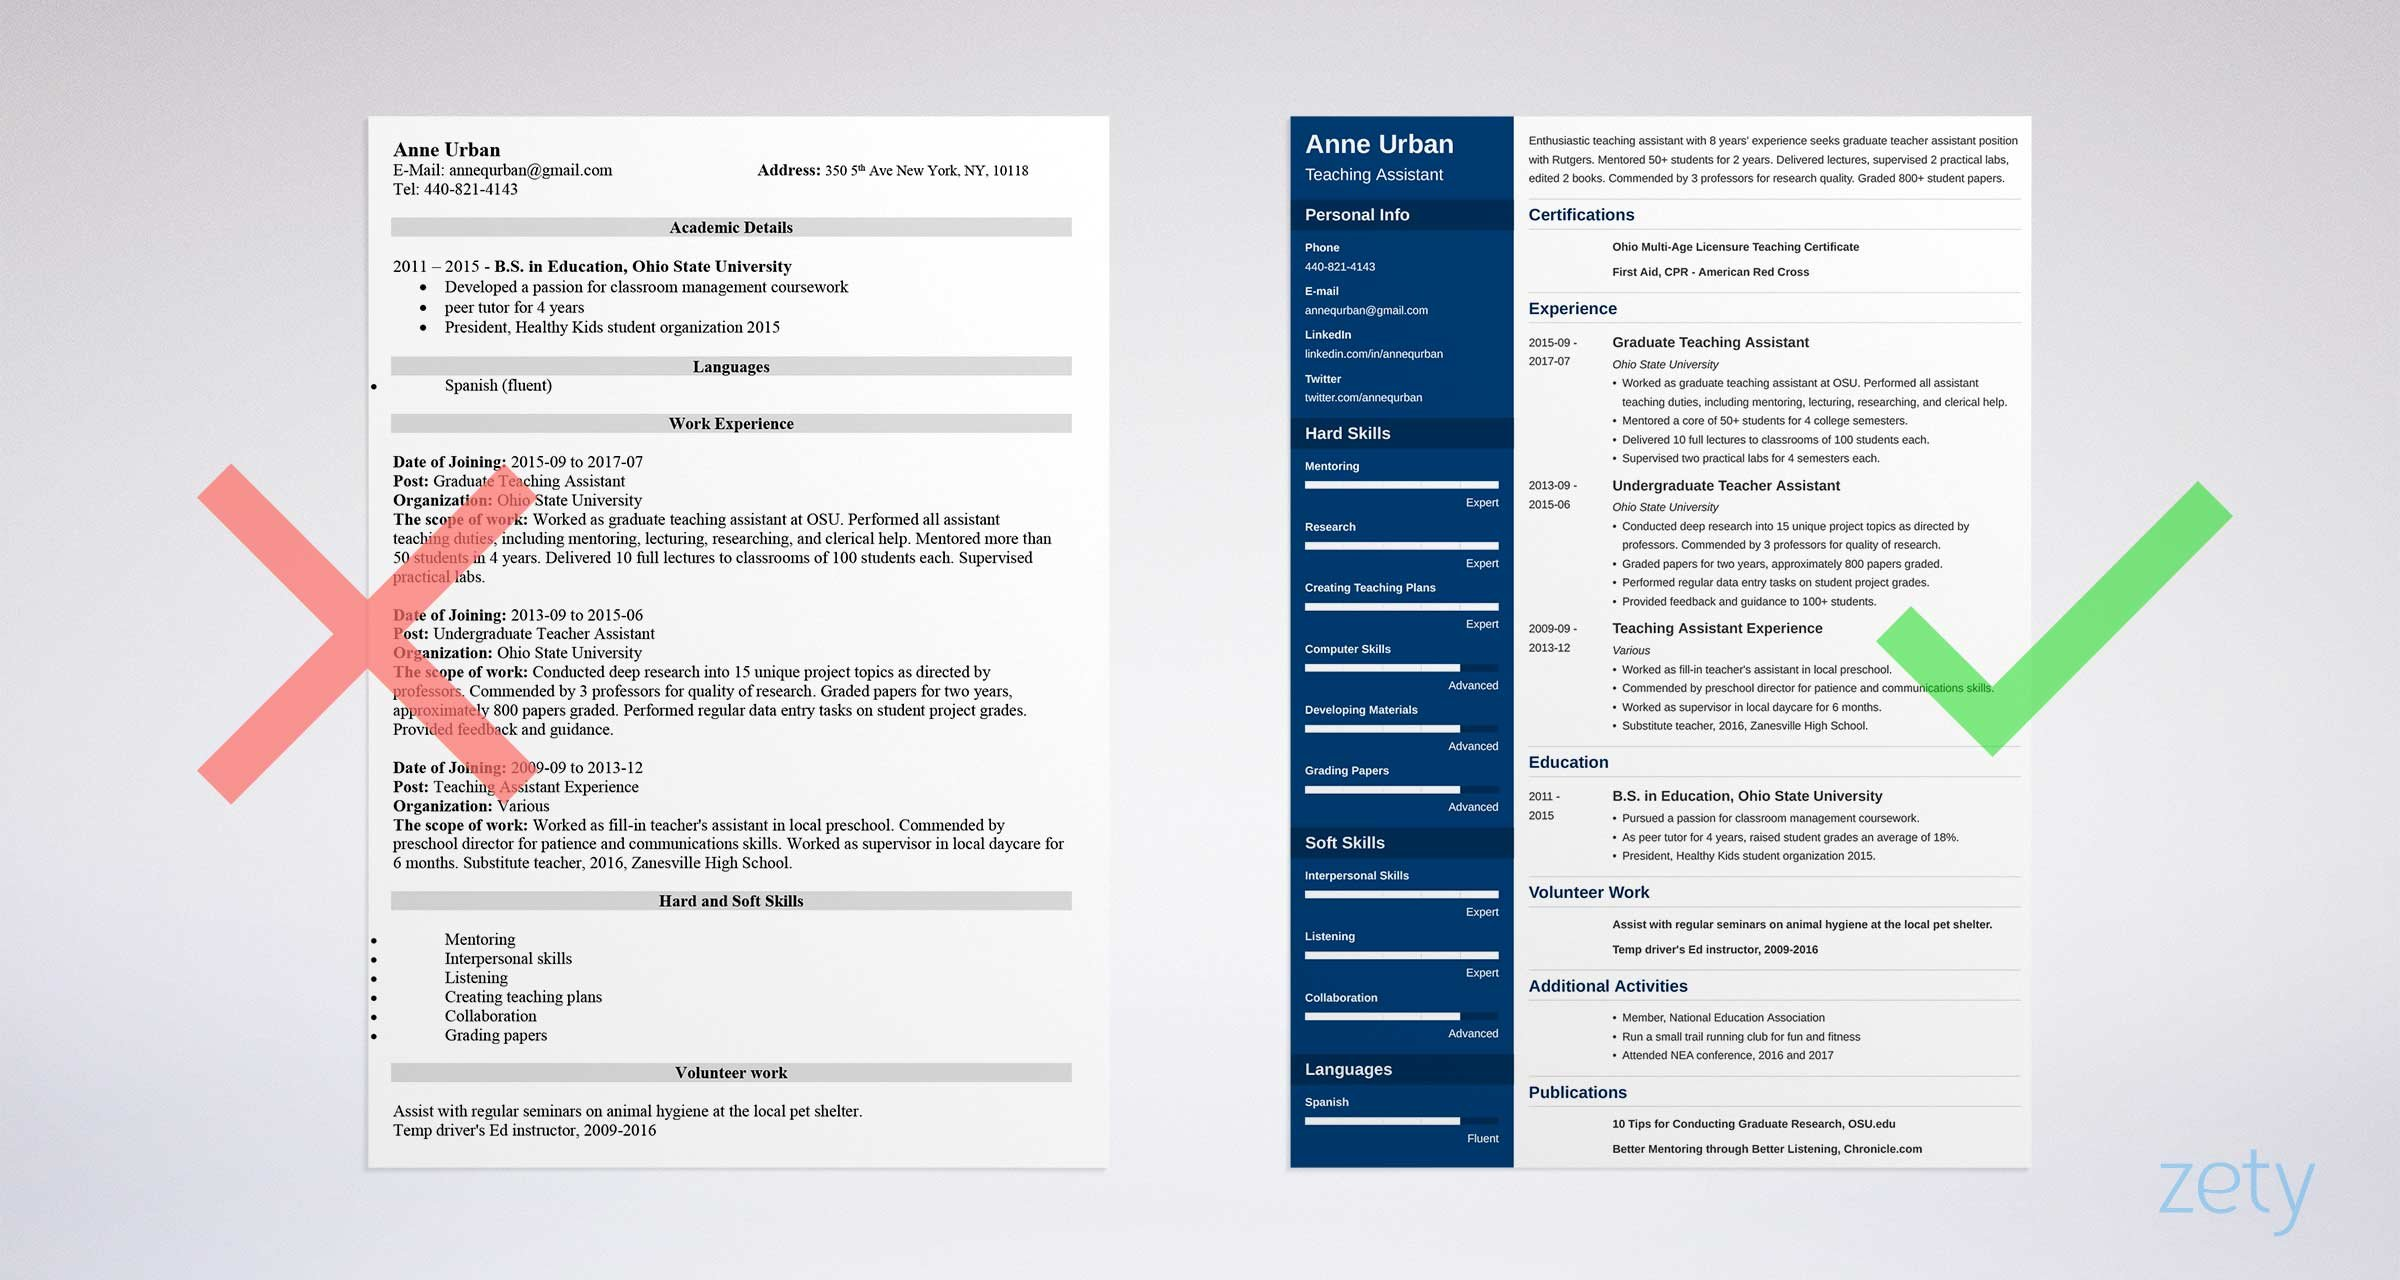 best font for resume size standard professional pairings suggestions teaching assistant Resume Resume Font Suggestions